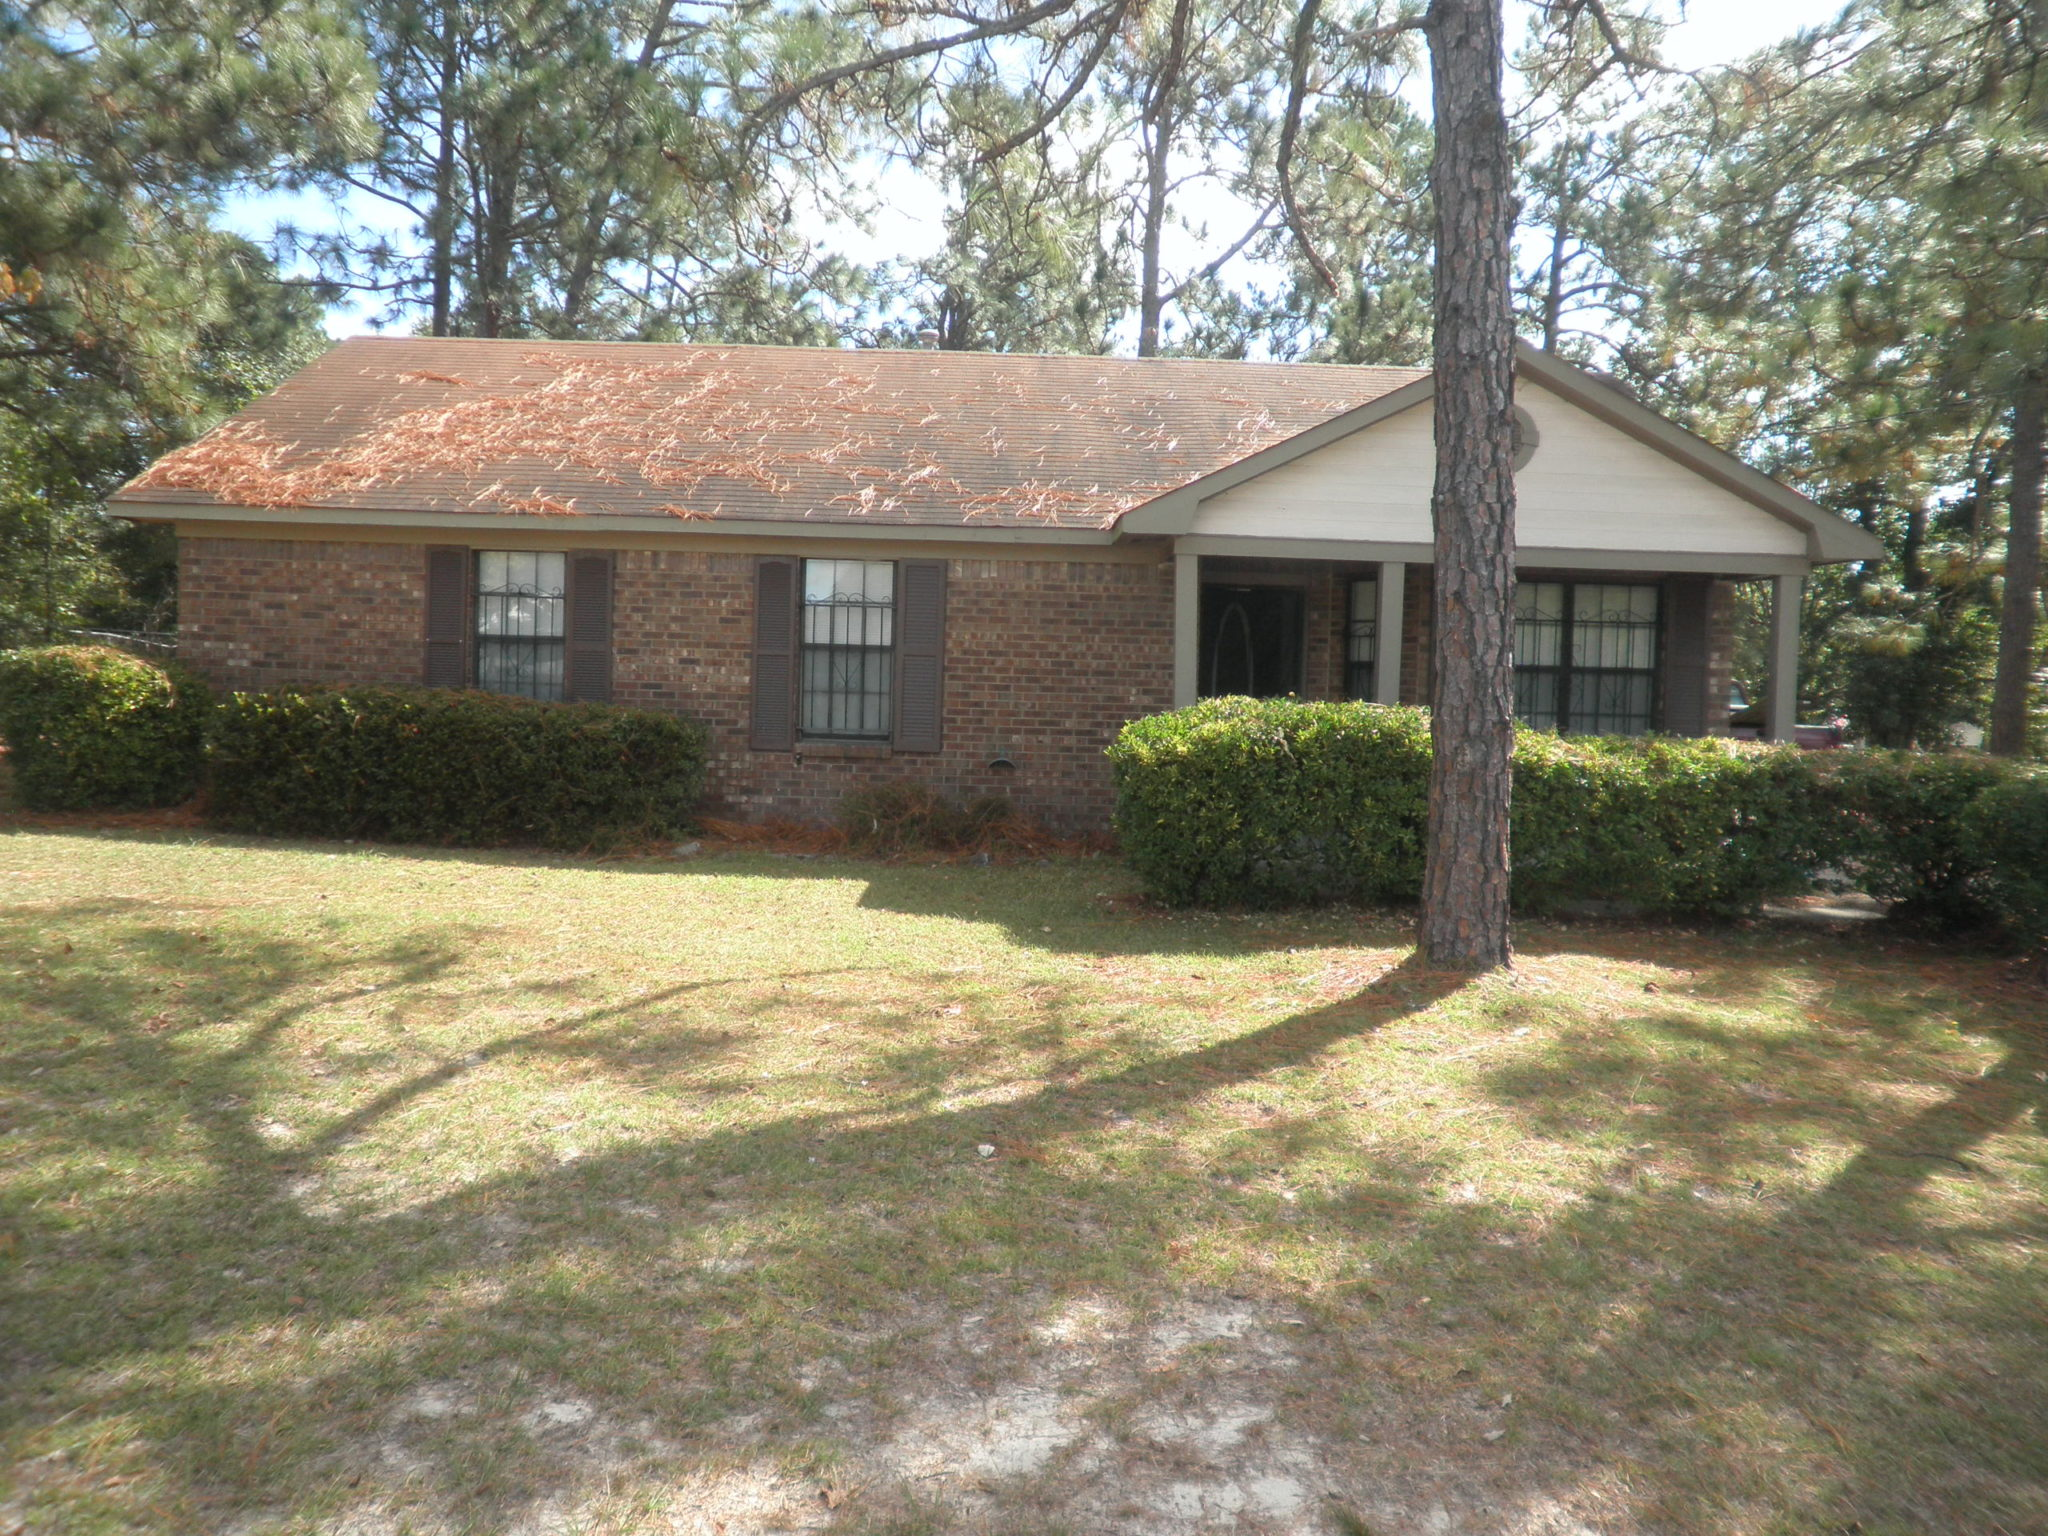 4 Bedroom Houses For Rent In Augusta Ga 28 Images 4 Bedroom Houses For Rent In Augusta Ga 28